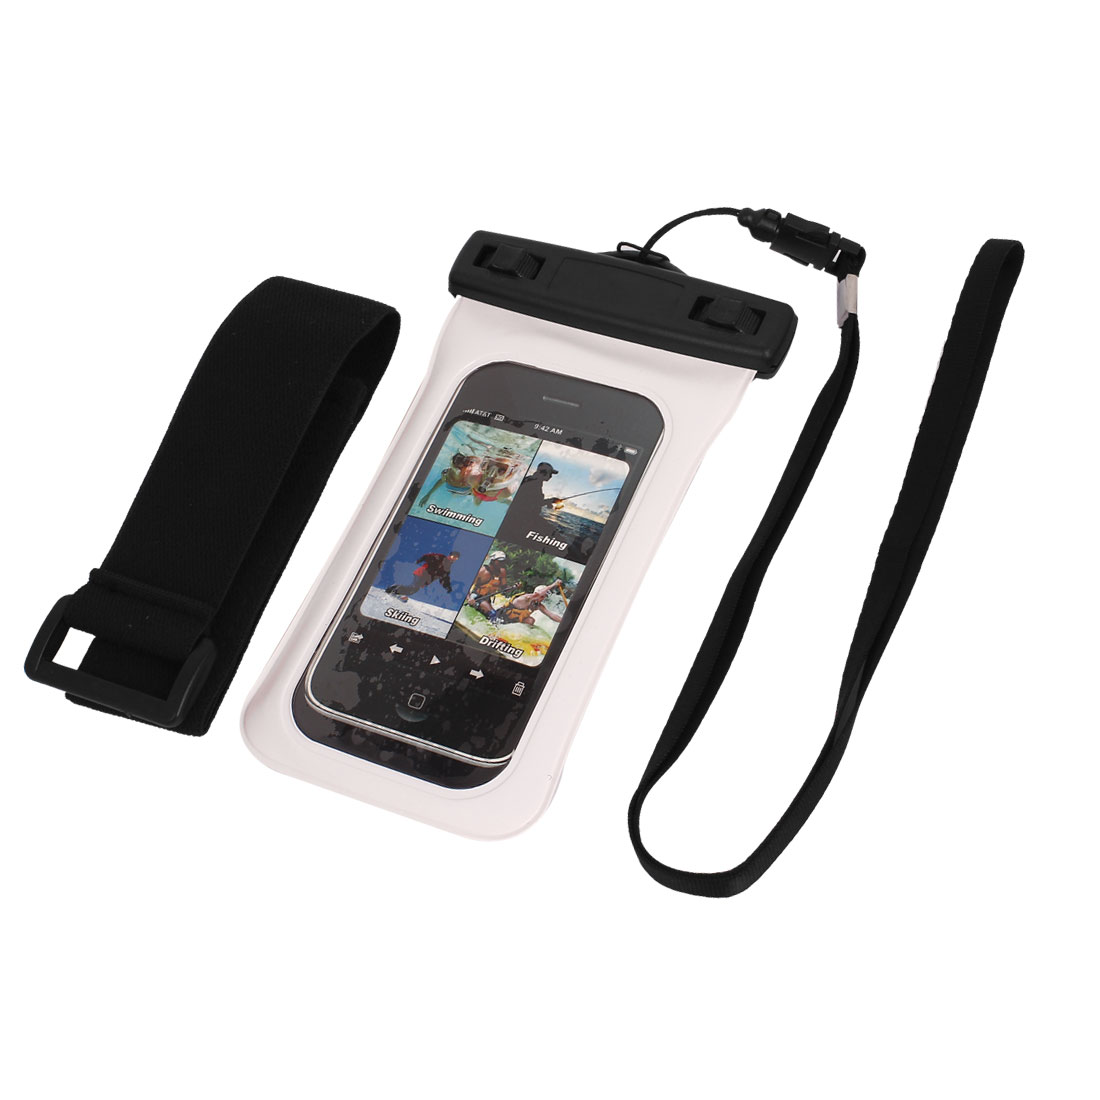 "Underwater Waterproof Case Dry Bag Cover Pouch White + Strap for 4"" Cell Phone"